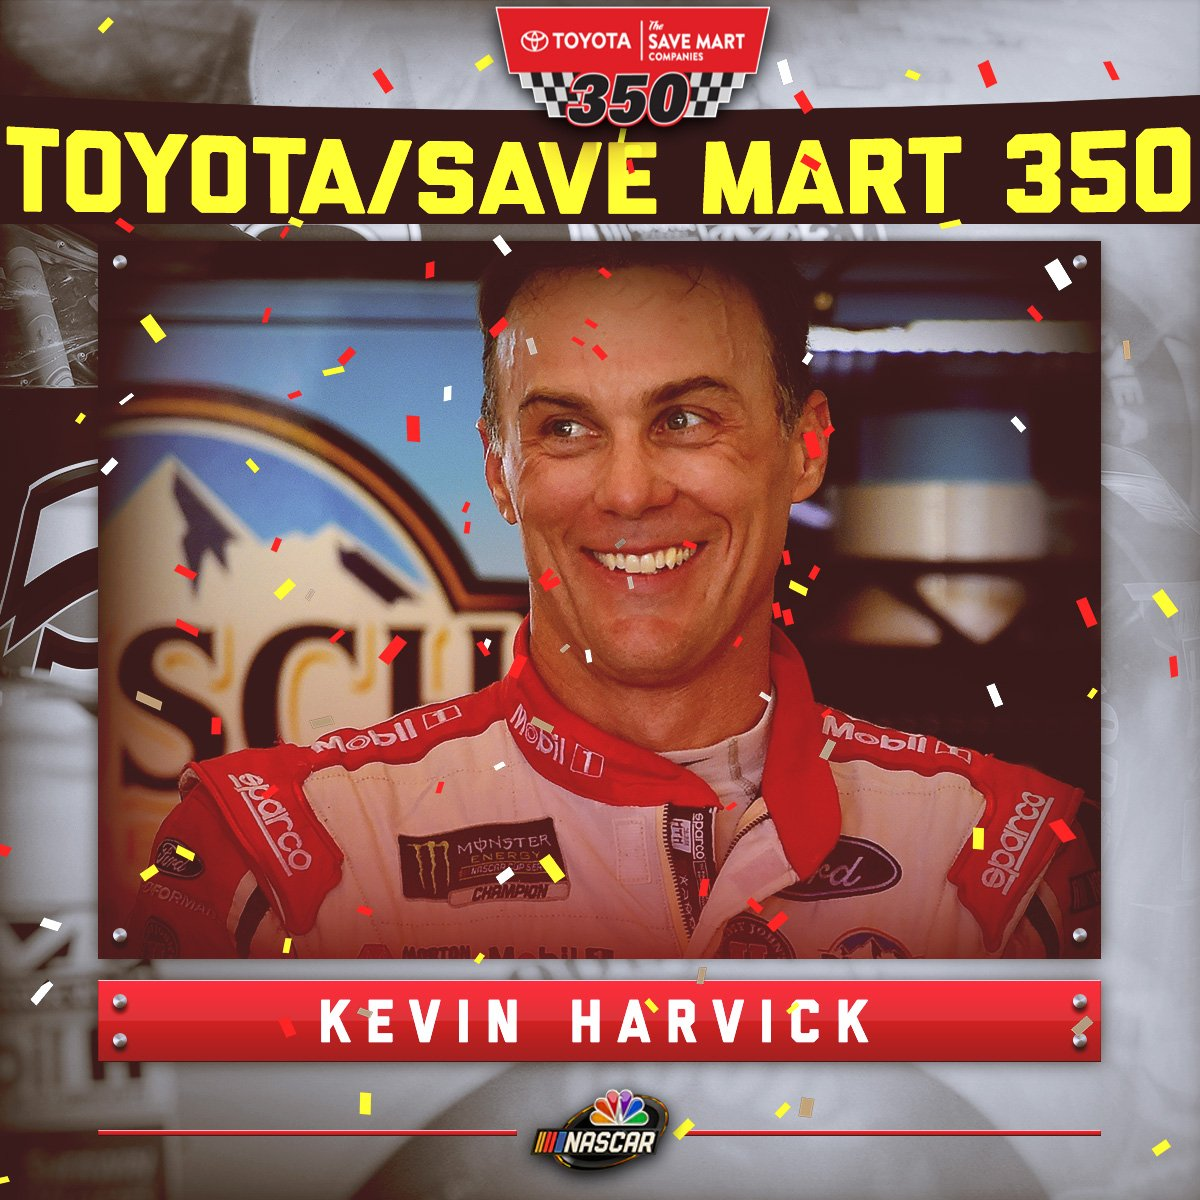 🏁CALIFORNIA'S @KevinHarvick WINS AT @RaceSonoma! 🏁  #TSM350 #NASCAR ht...